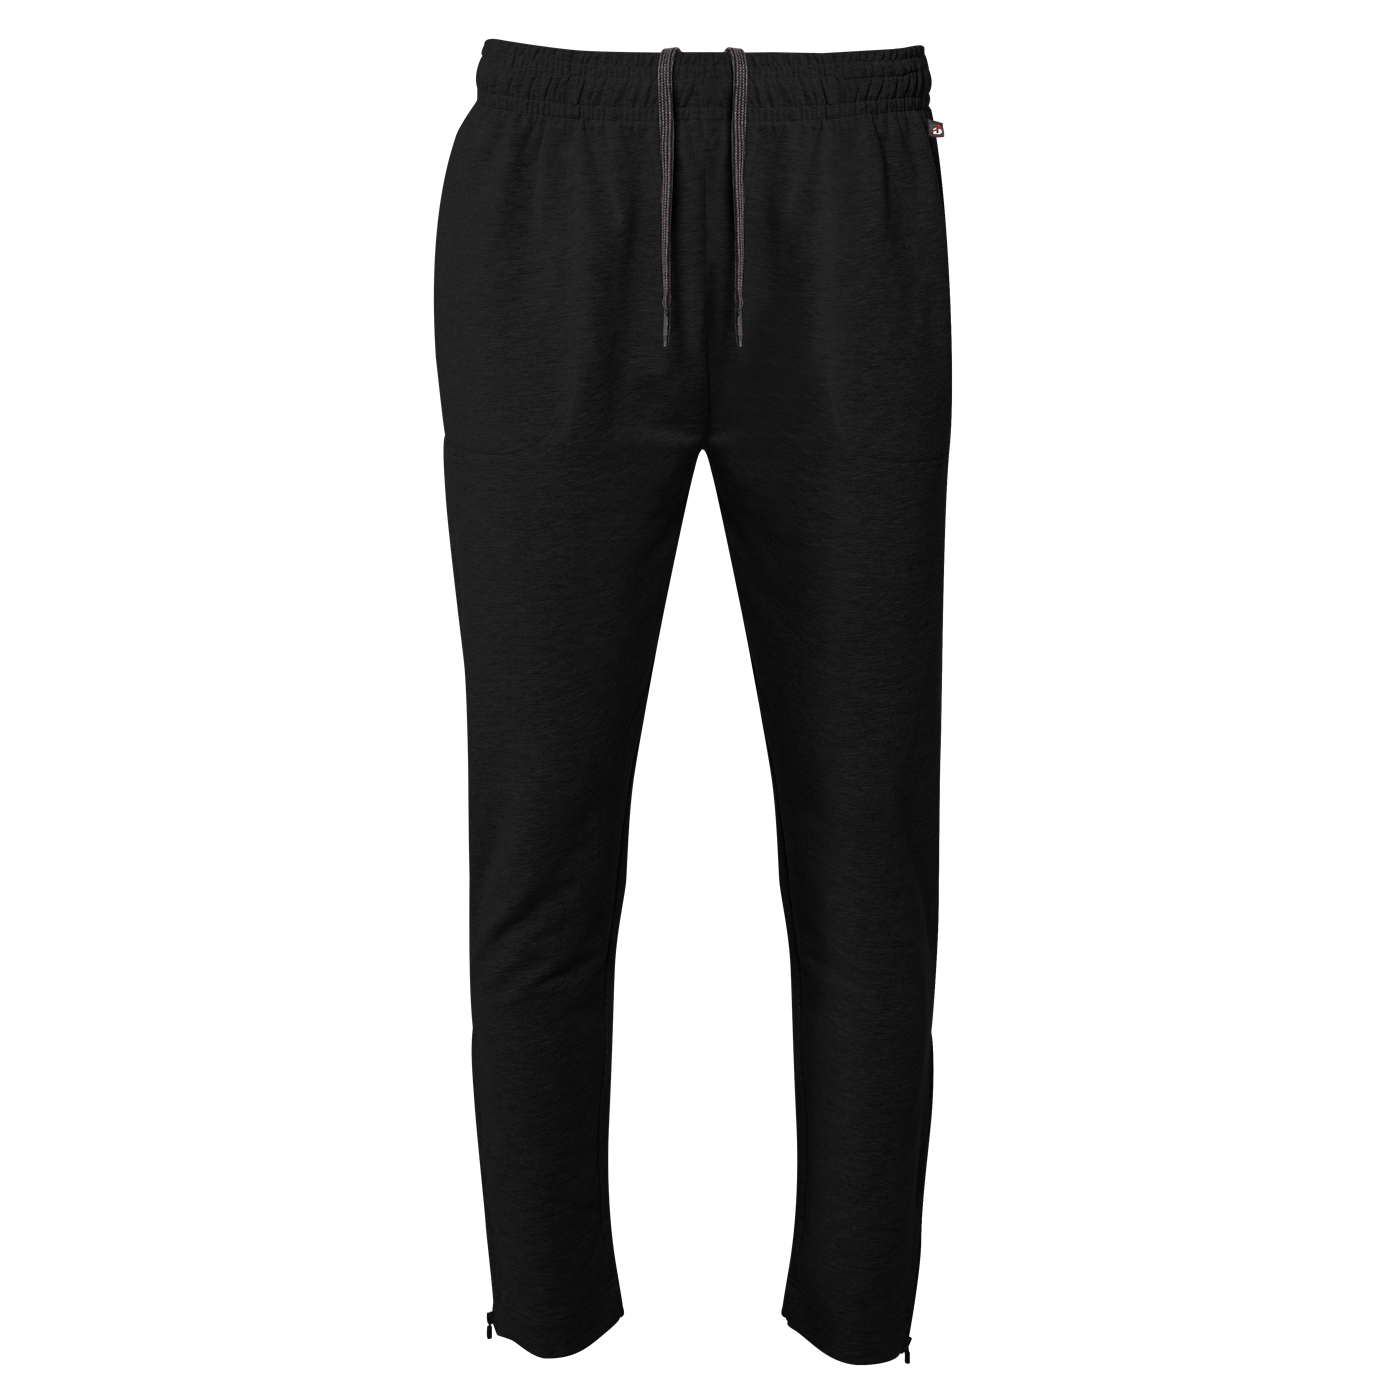 1070_Fitflex_French_Terry_Pant_BK_F